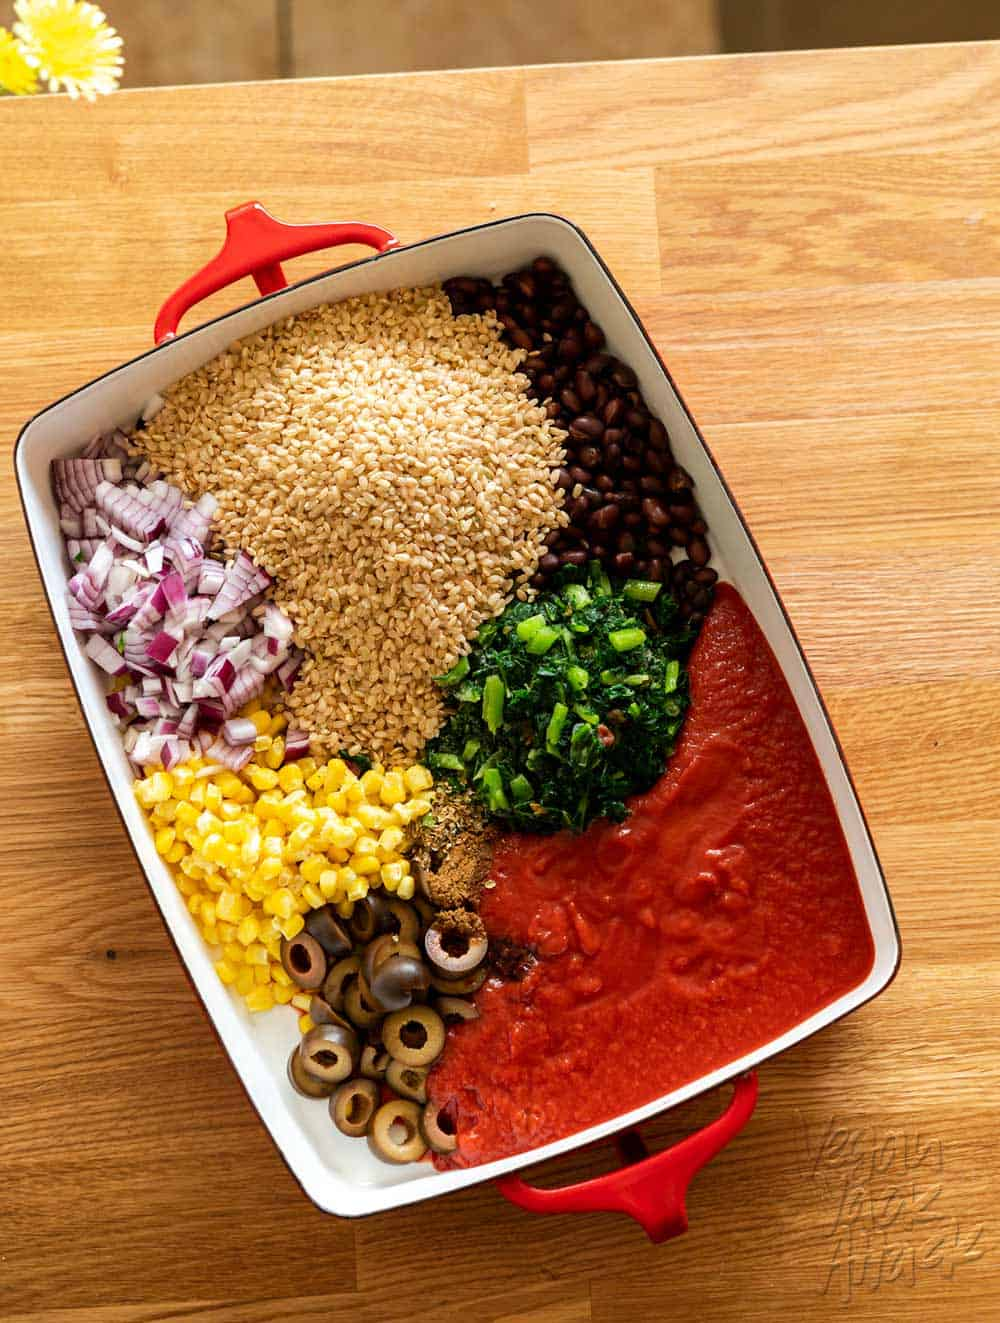 Image of casserole dish with bake ingredients segregated before mixing